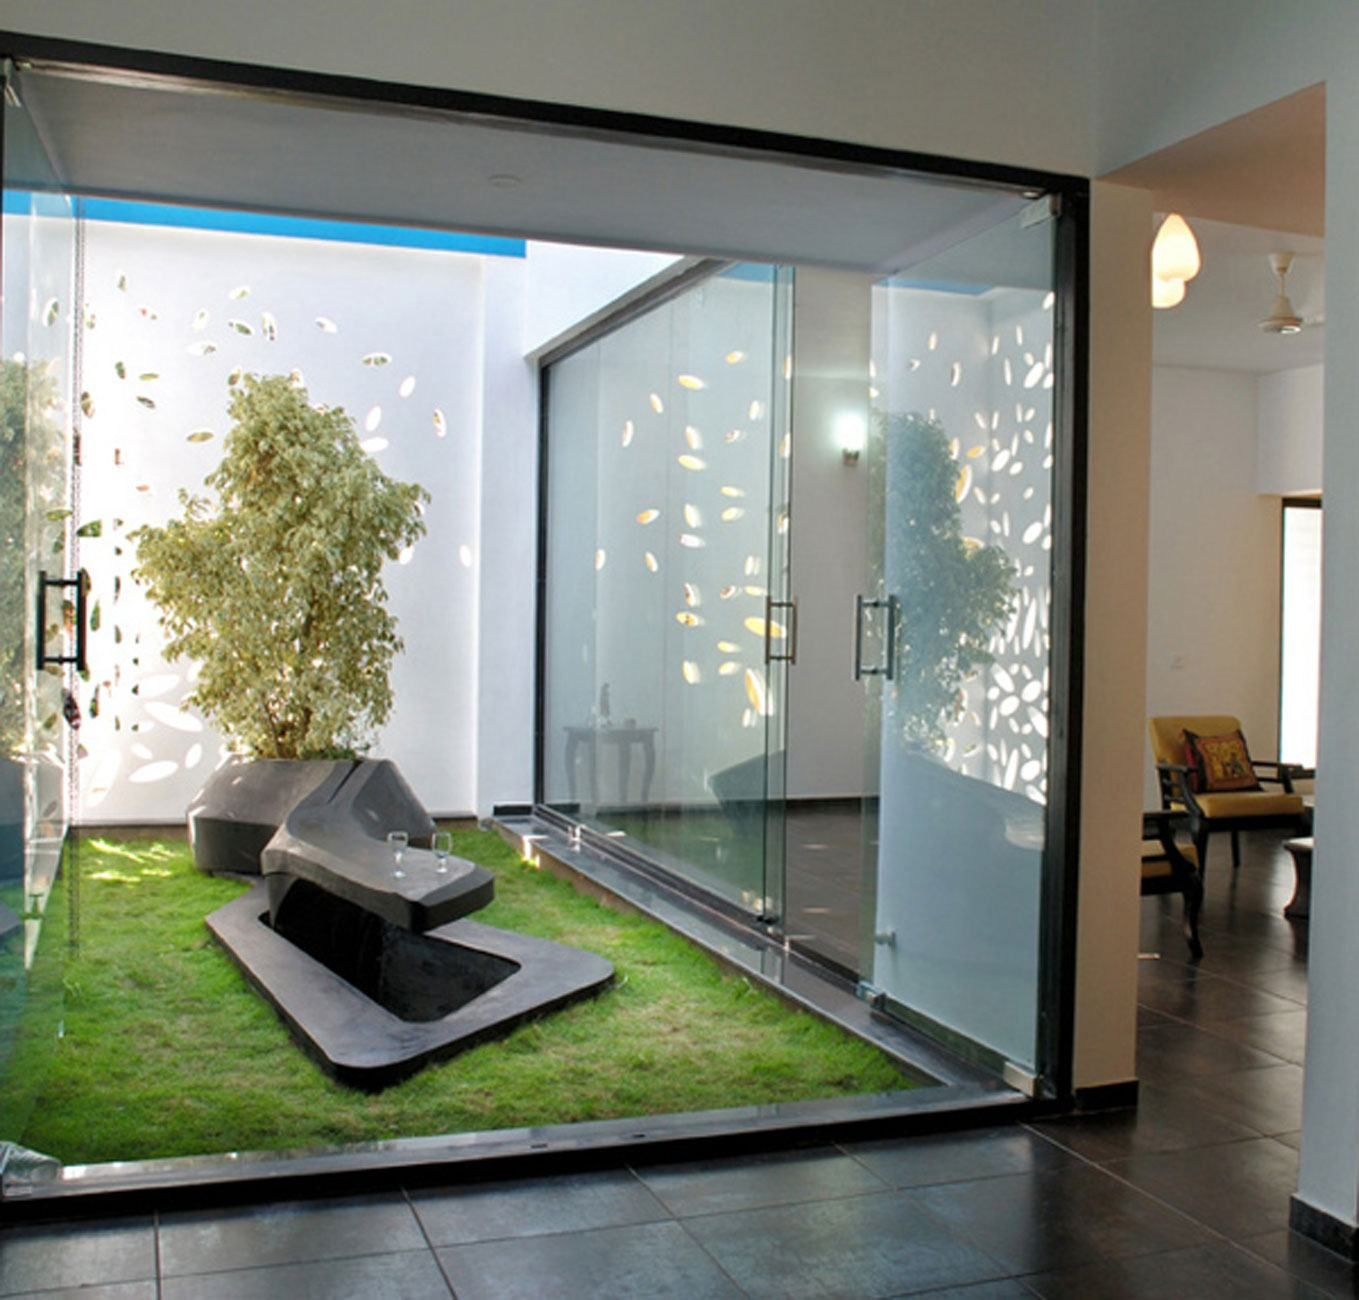 Home designs gallery amazing interior garden with modern for Amazing interior design ideas